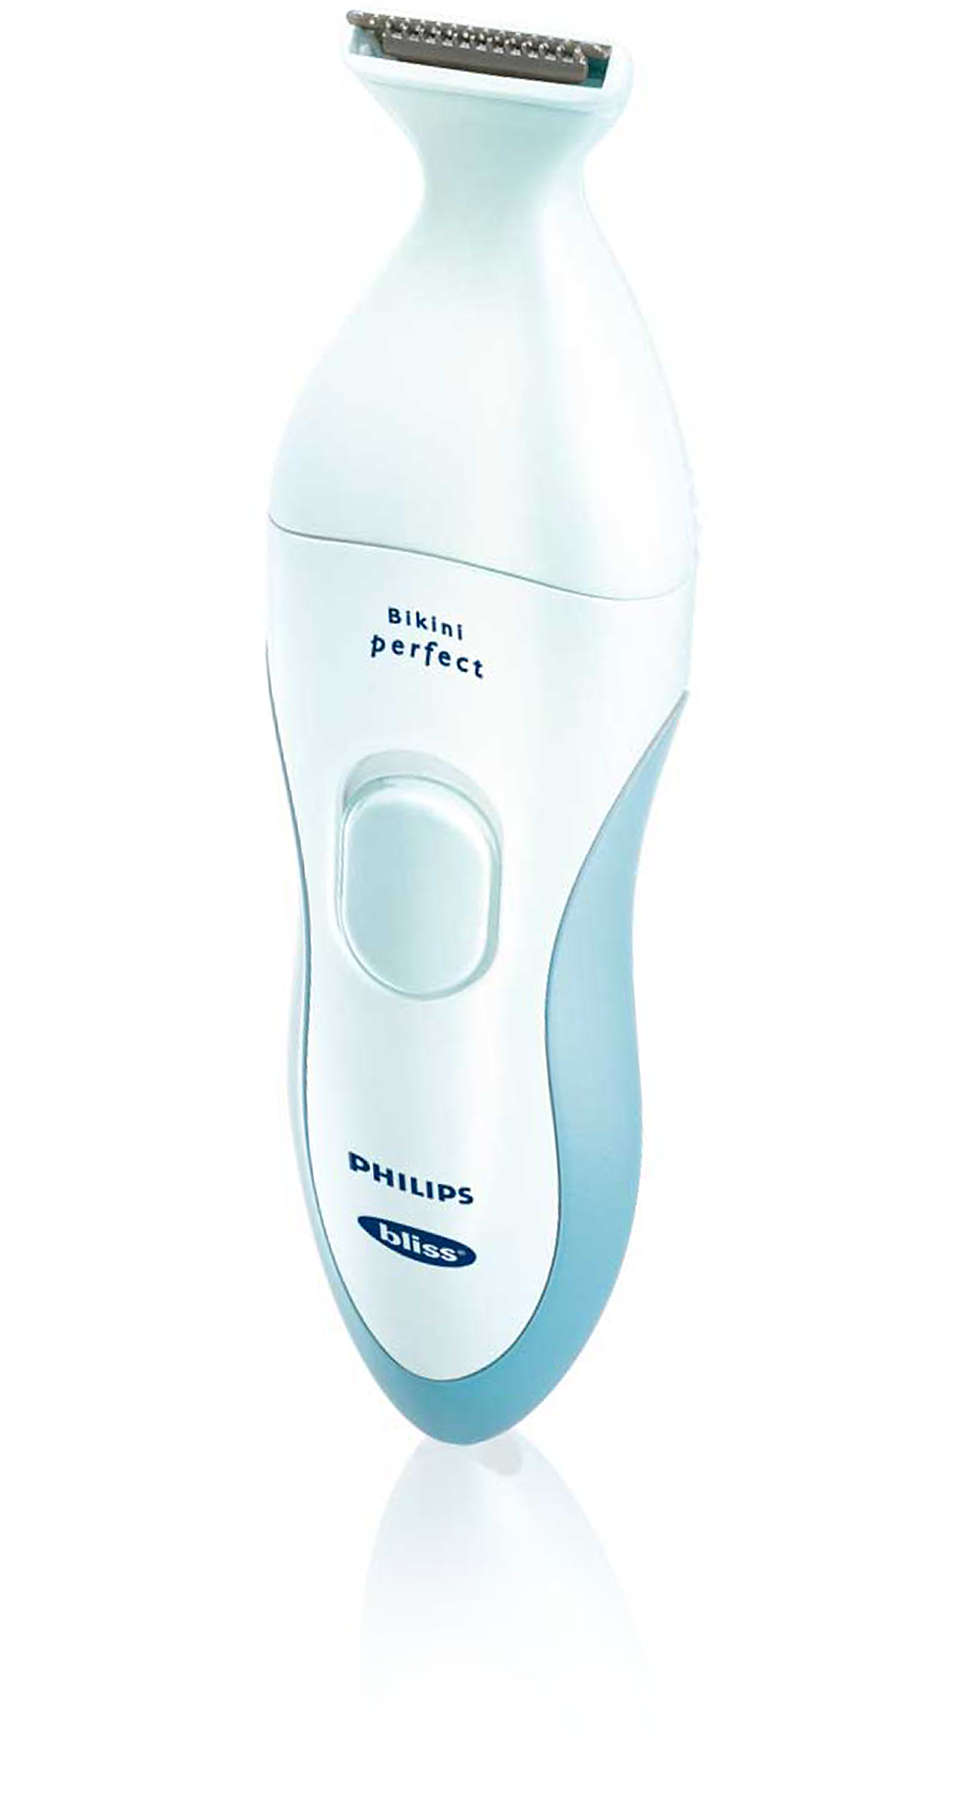 Spa-at-home grooming system